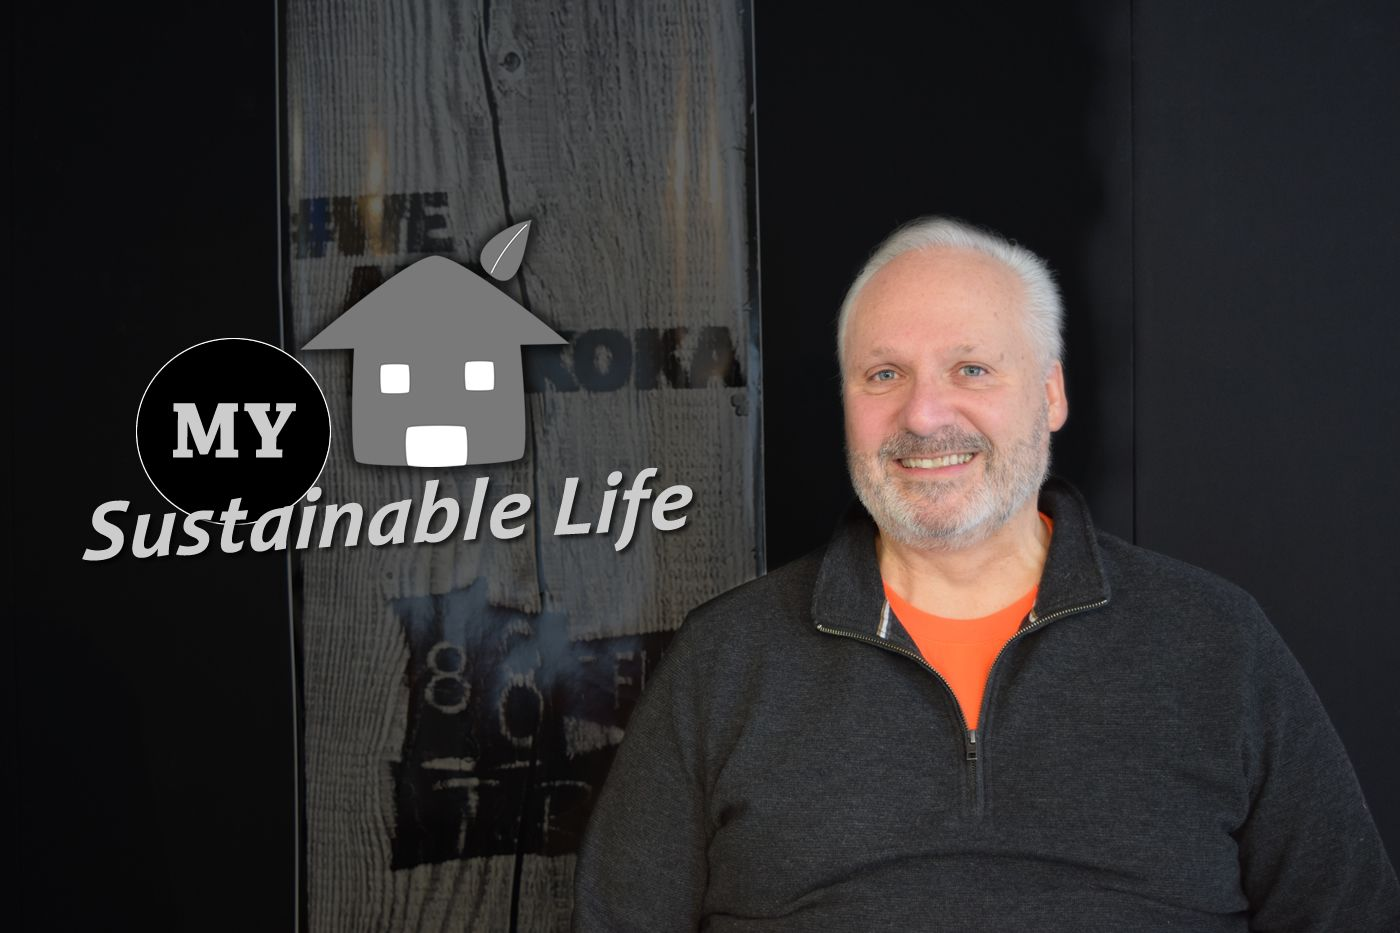 My Sustainable Life